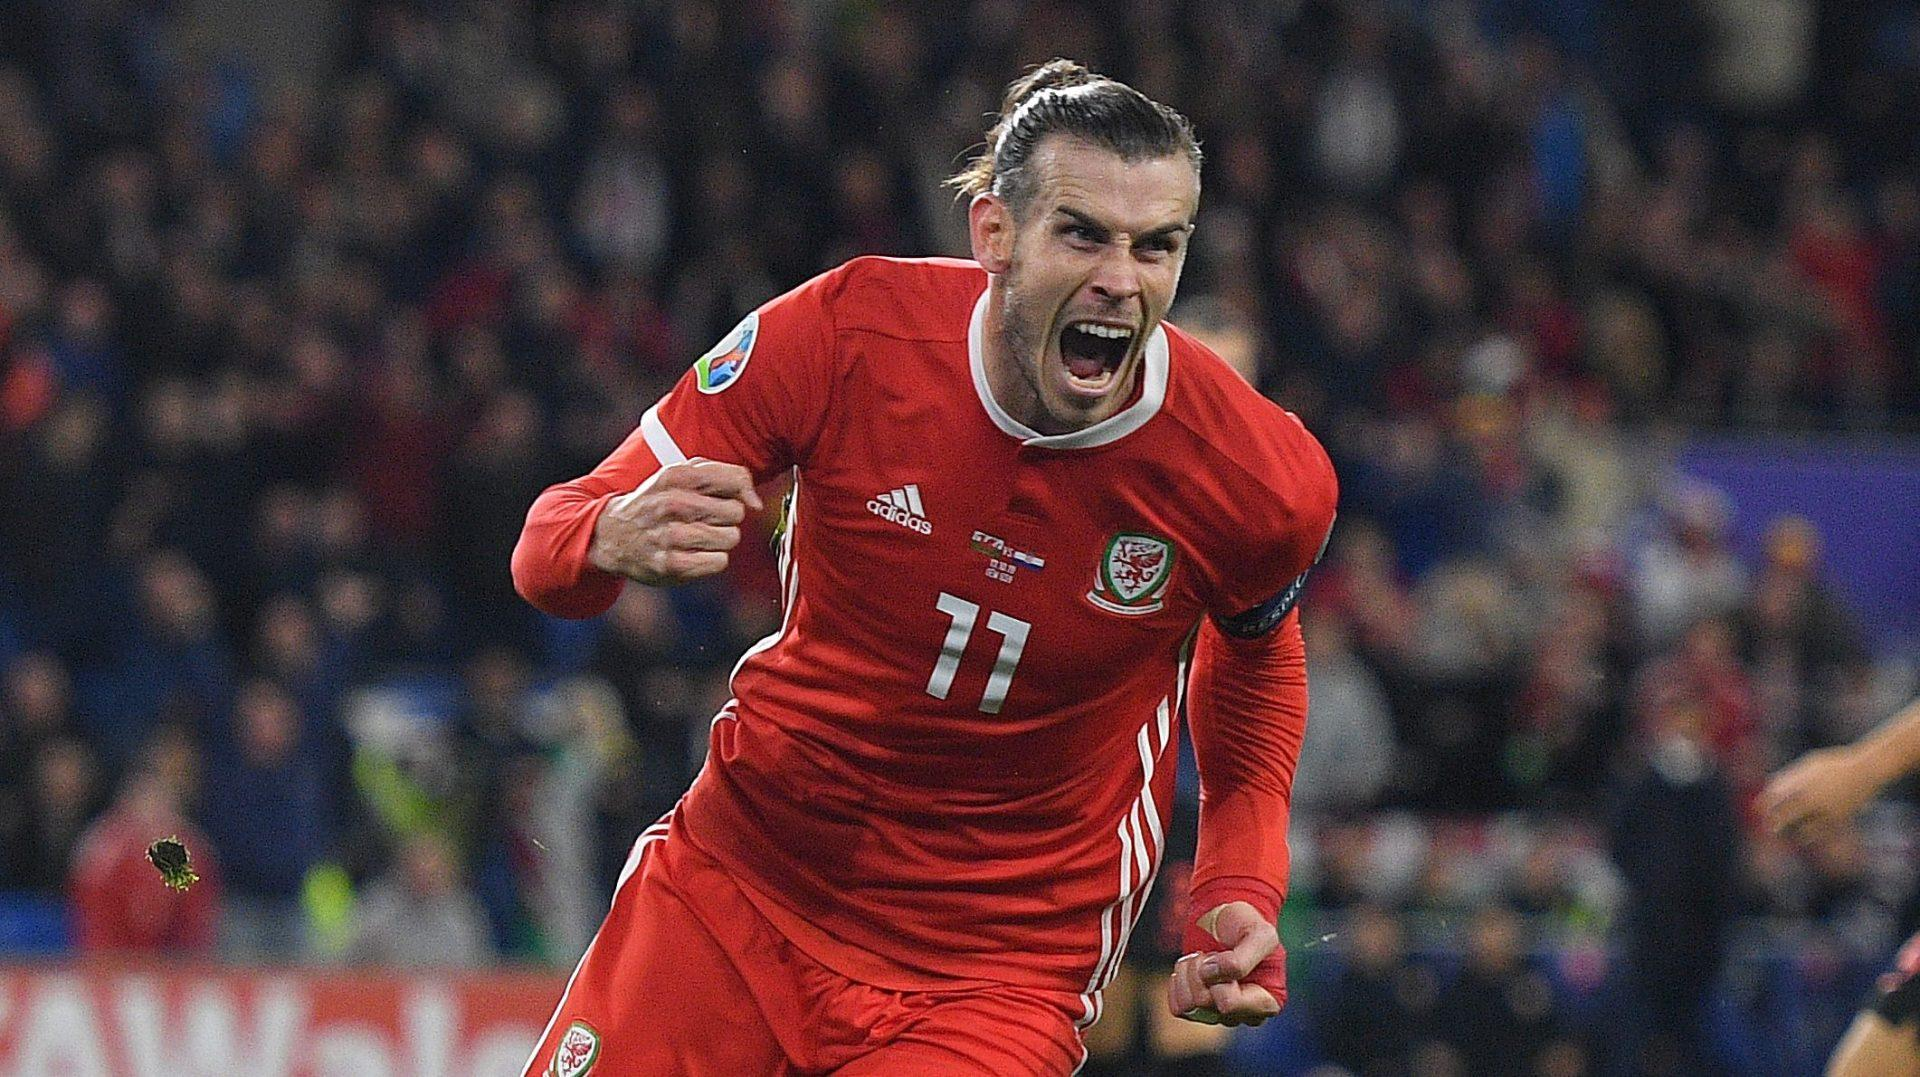 Unhappy in Madrid, Bale 'more excited' to play for Wales